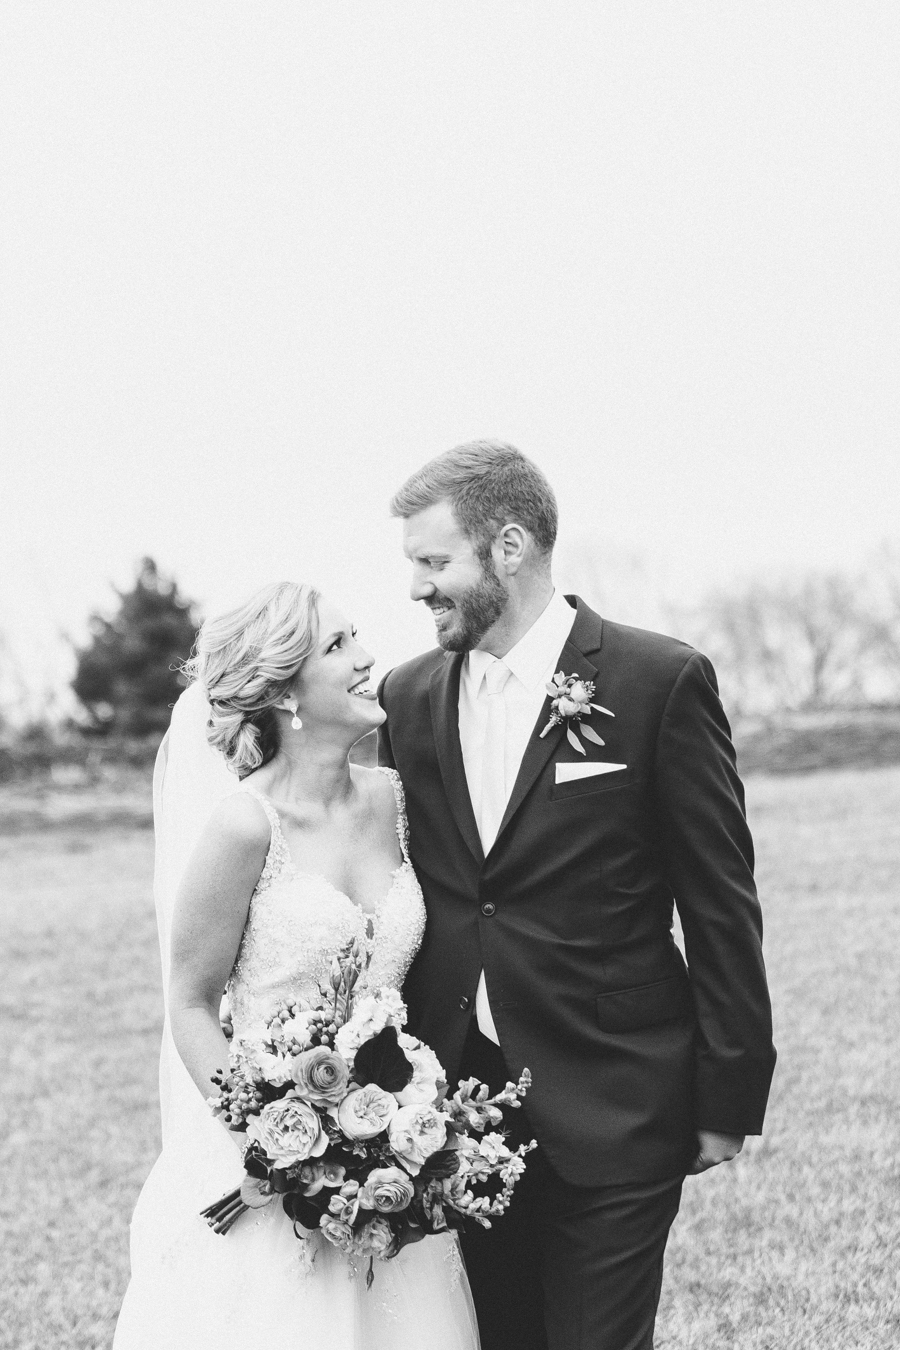 Abbey-And-Ryan-Sneak-Preview-Heirloom-Photo-Company-1.jpg